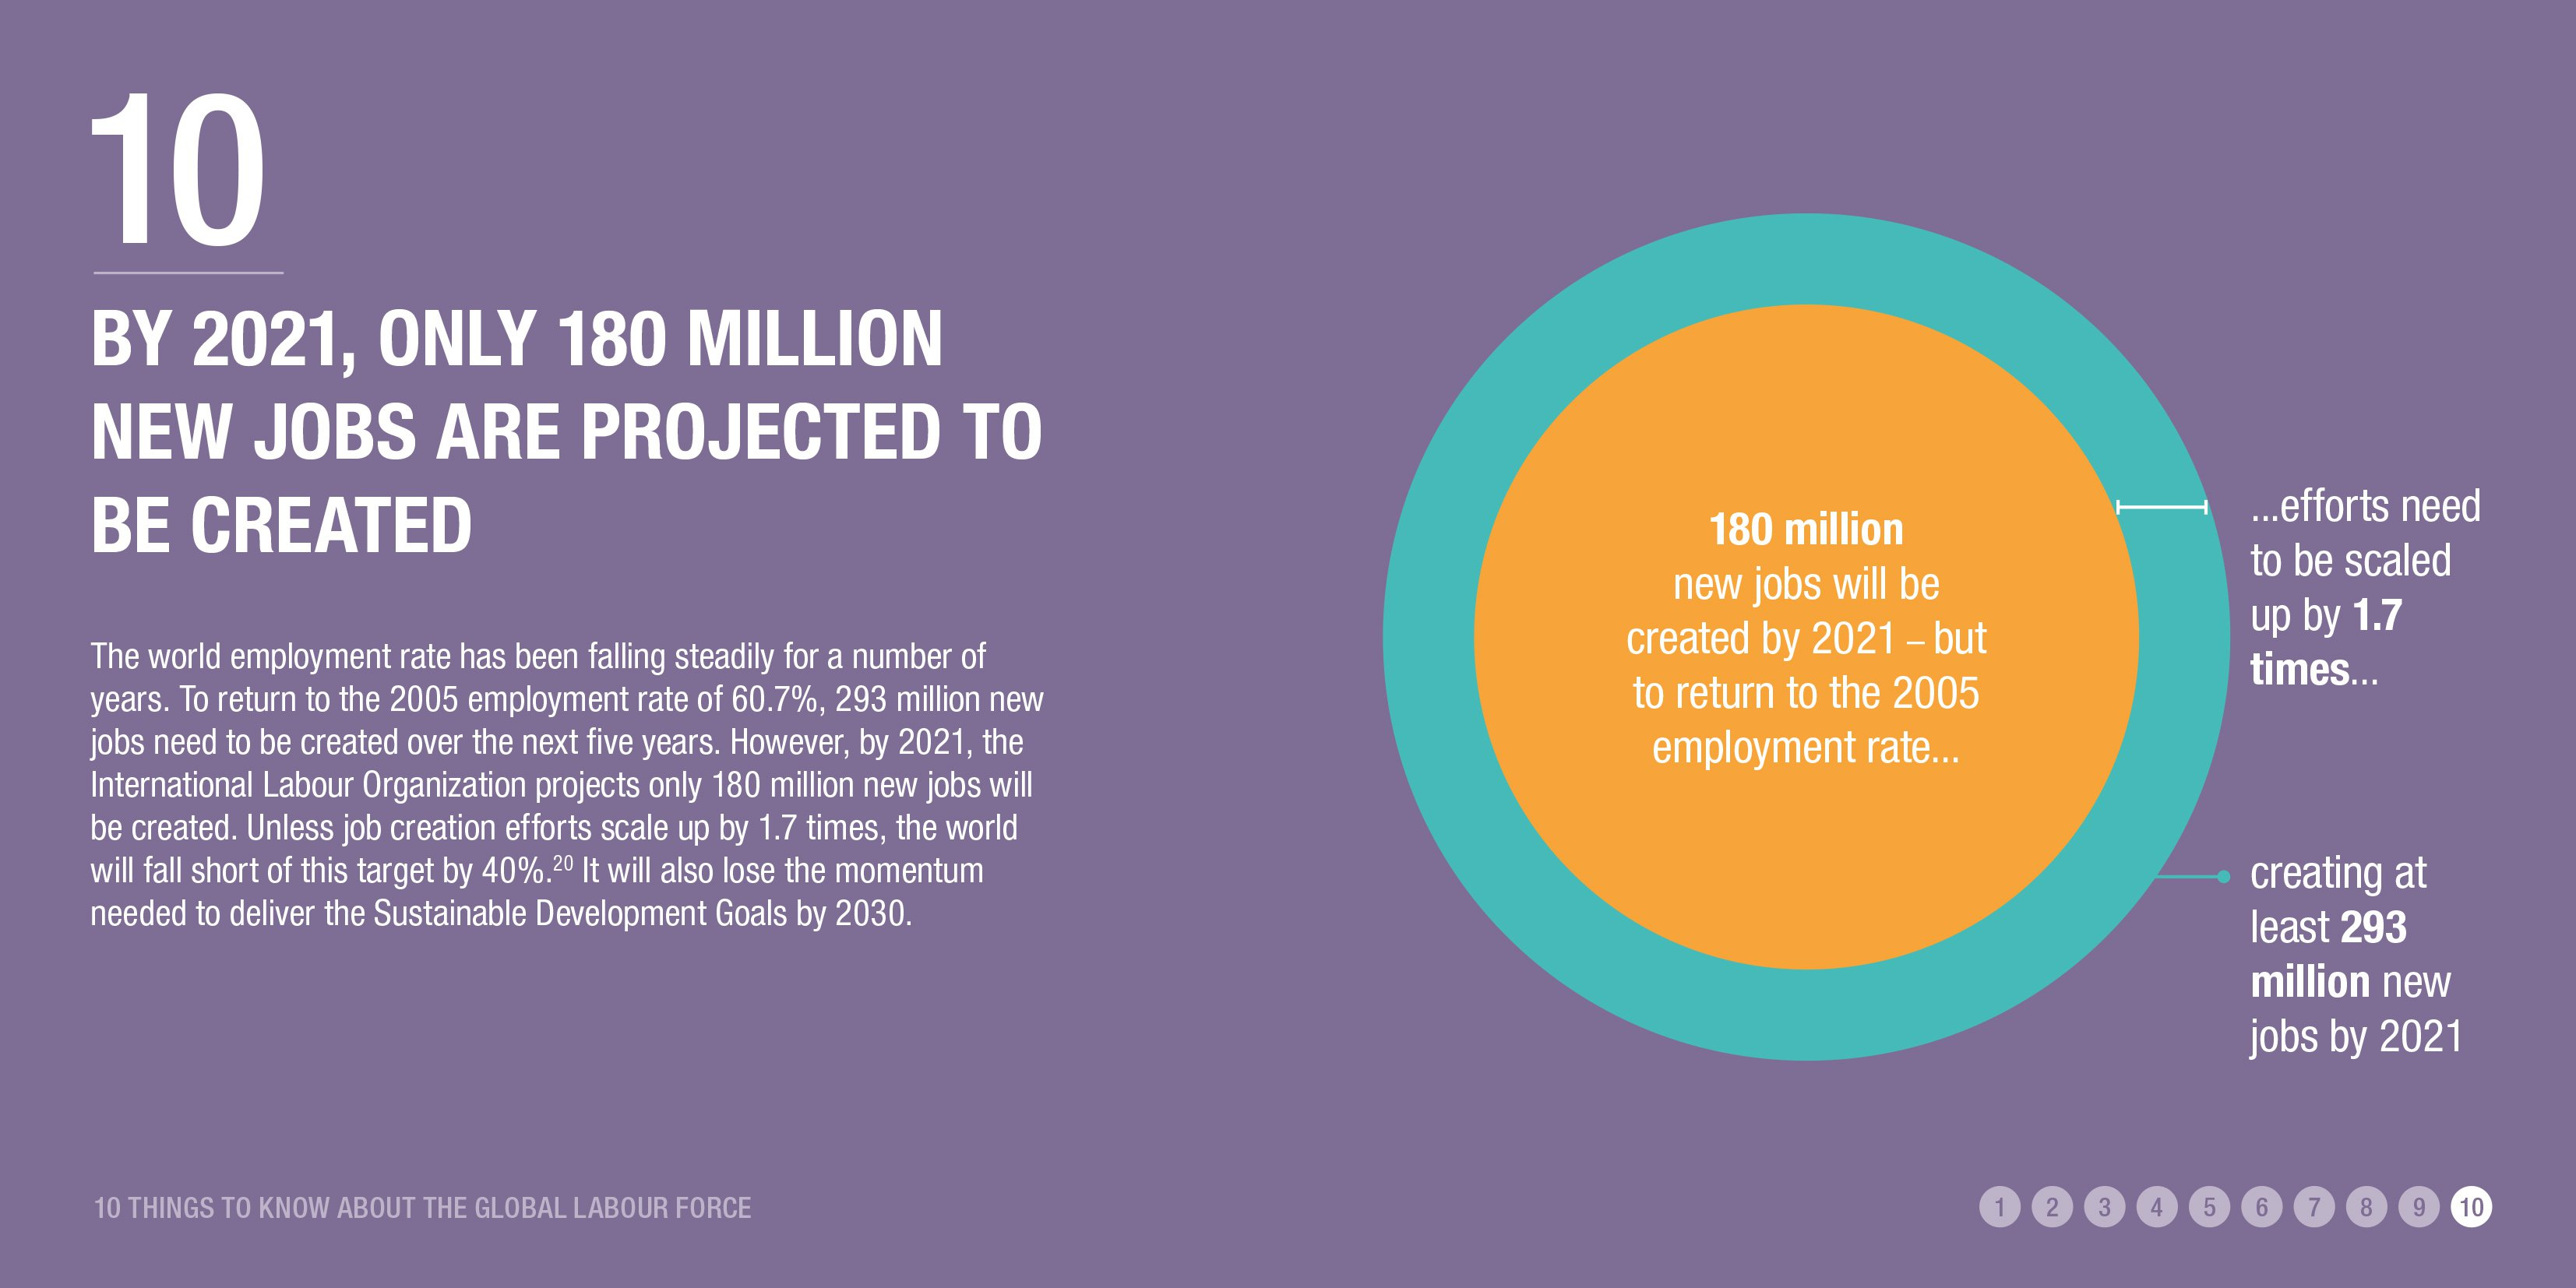 By 2021, only 180 million new jobs are projected to be created